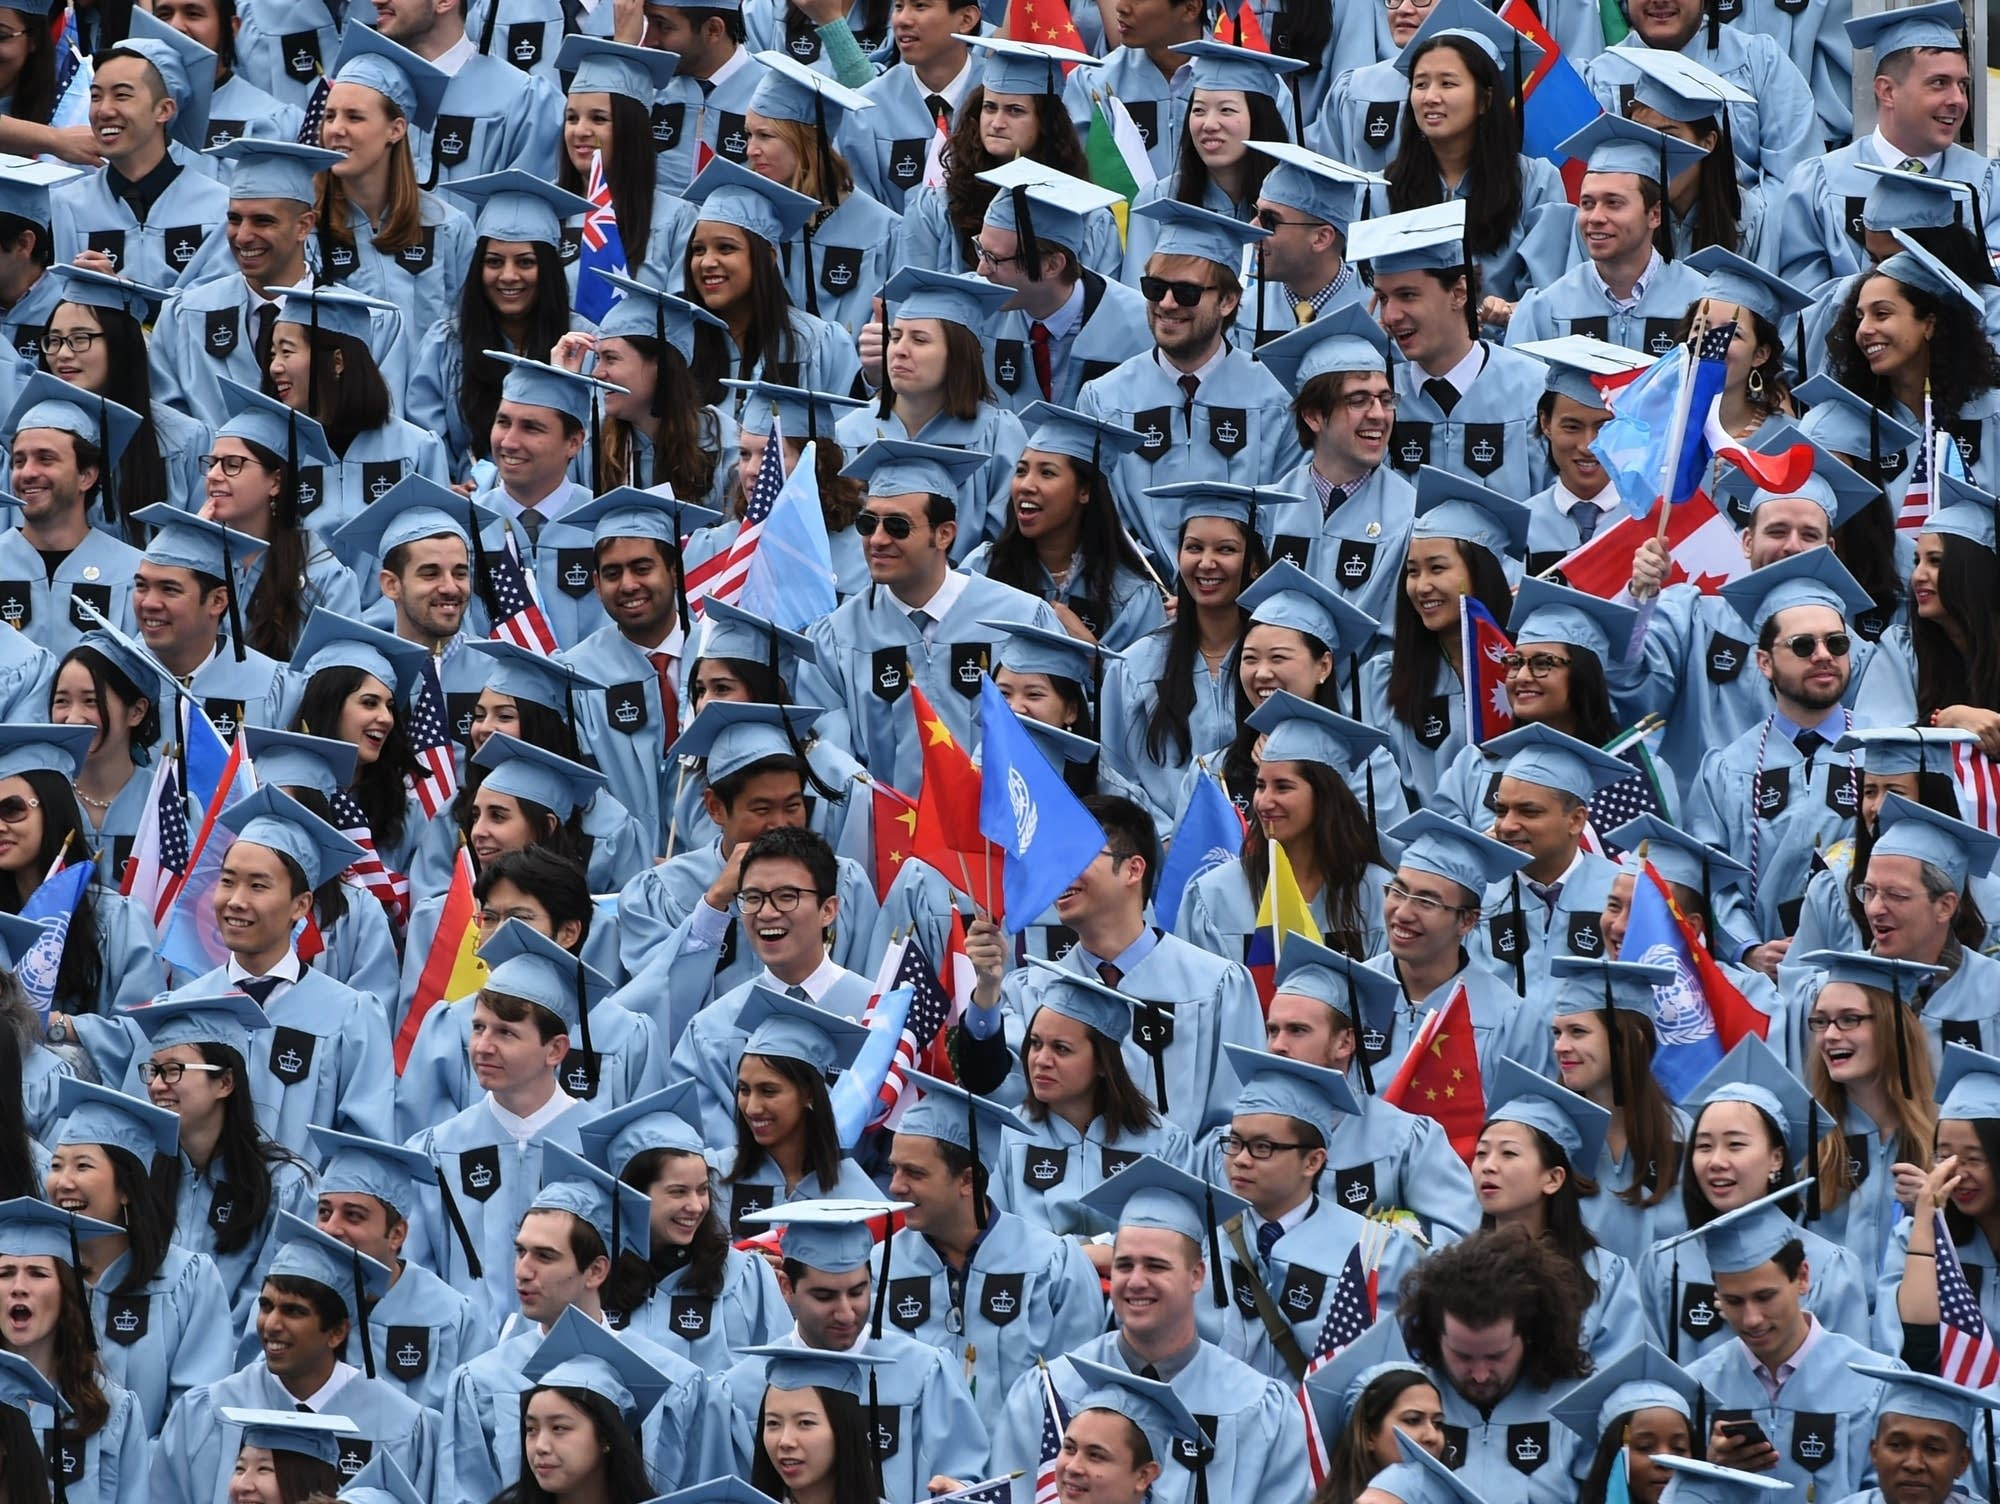 US-EDUCATION-COLUMBIA-COMMENCEMENT